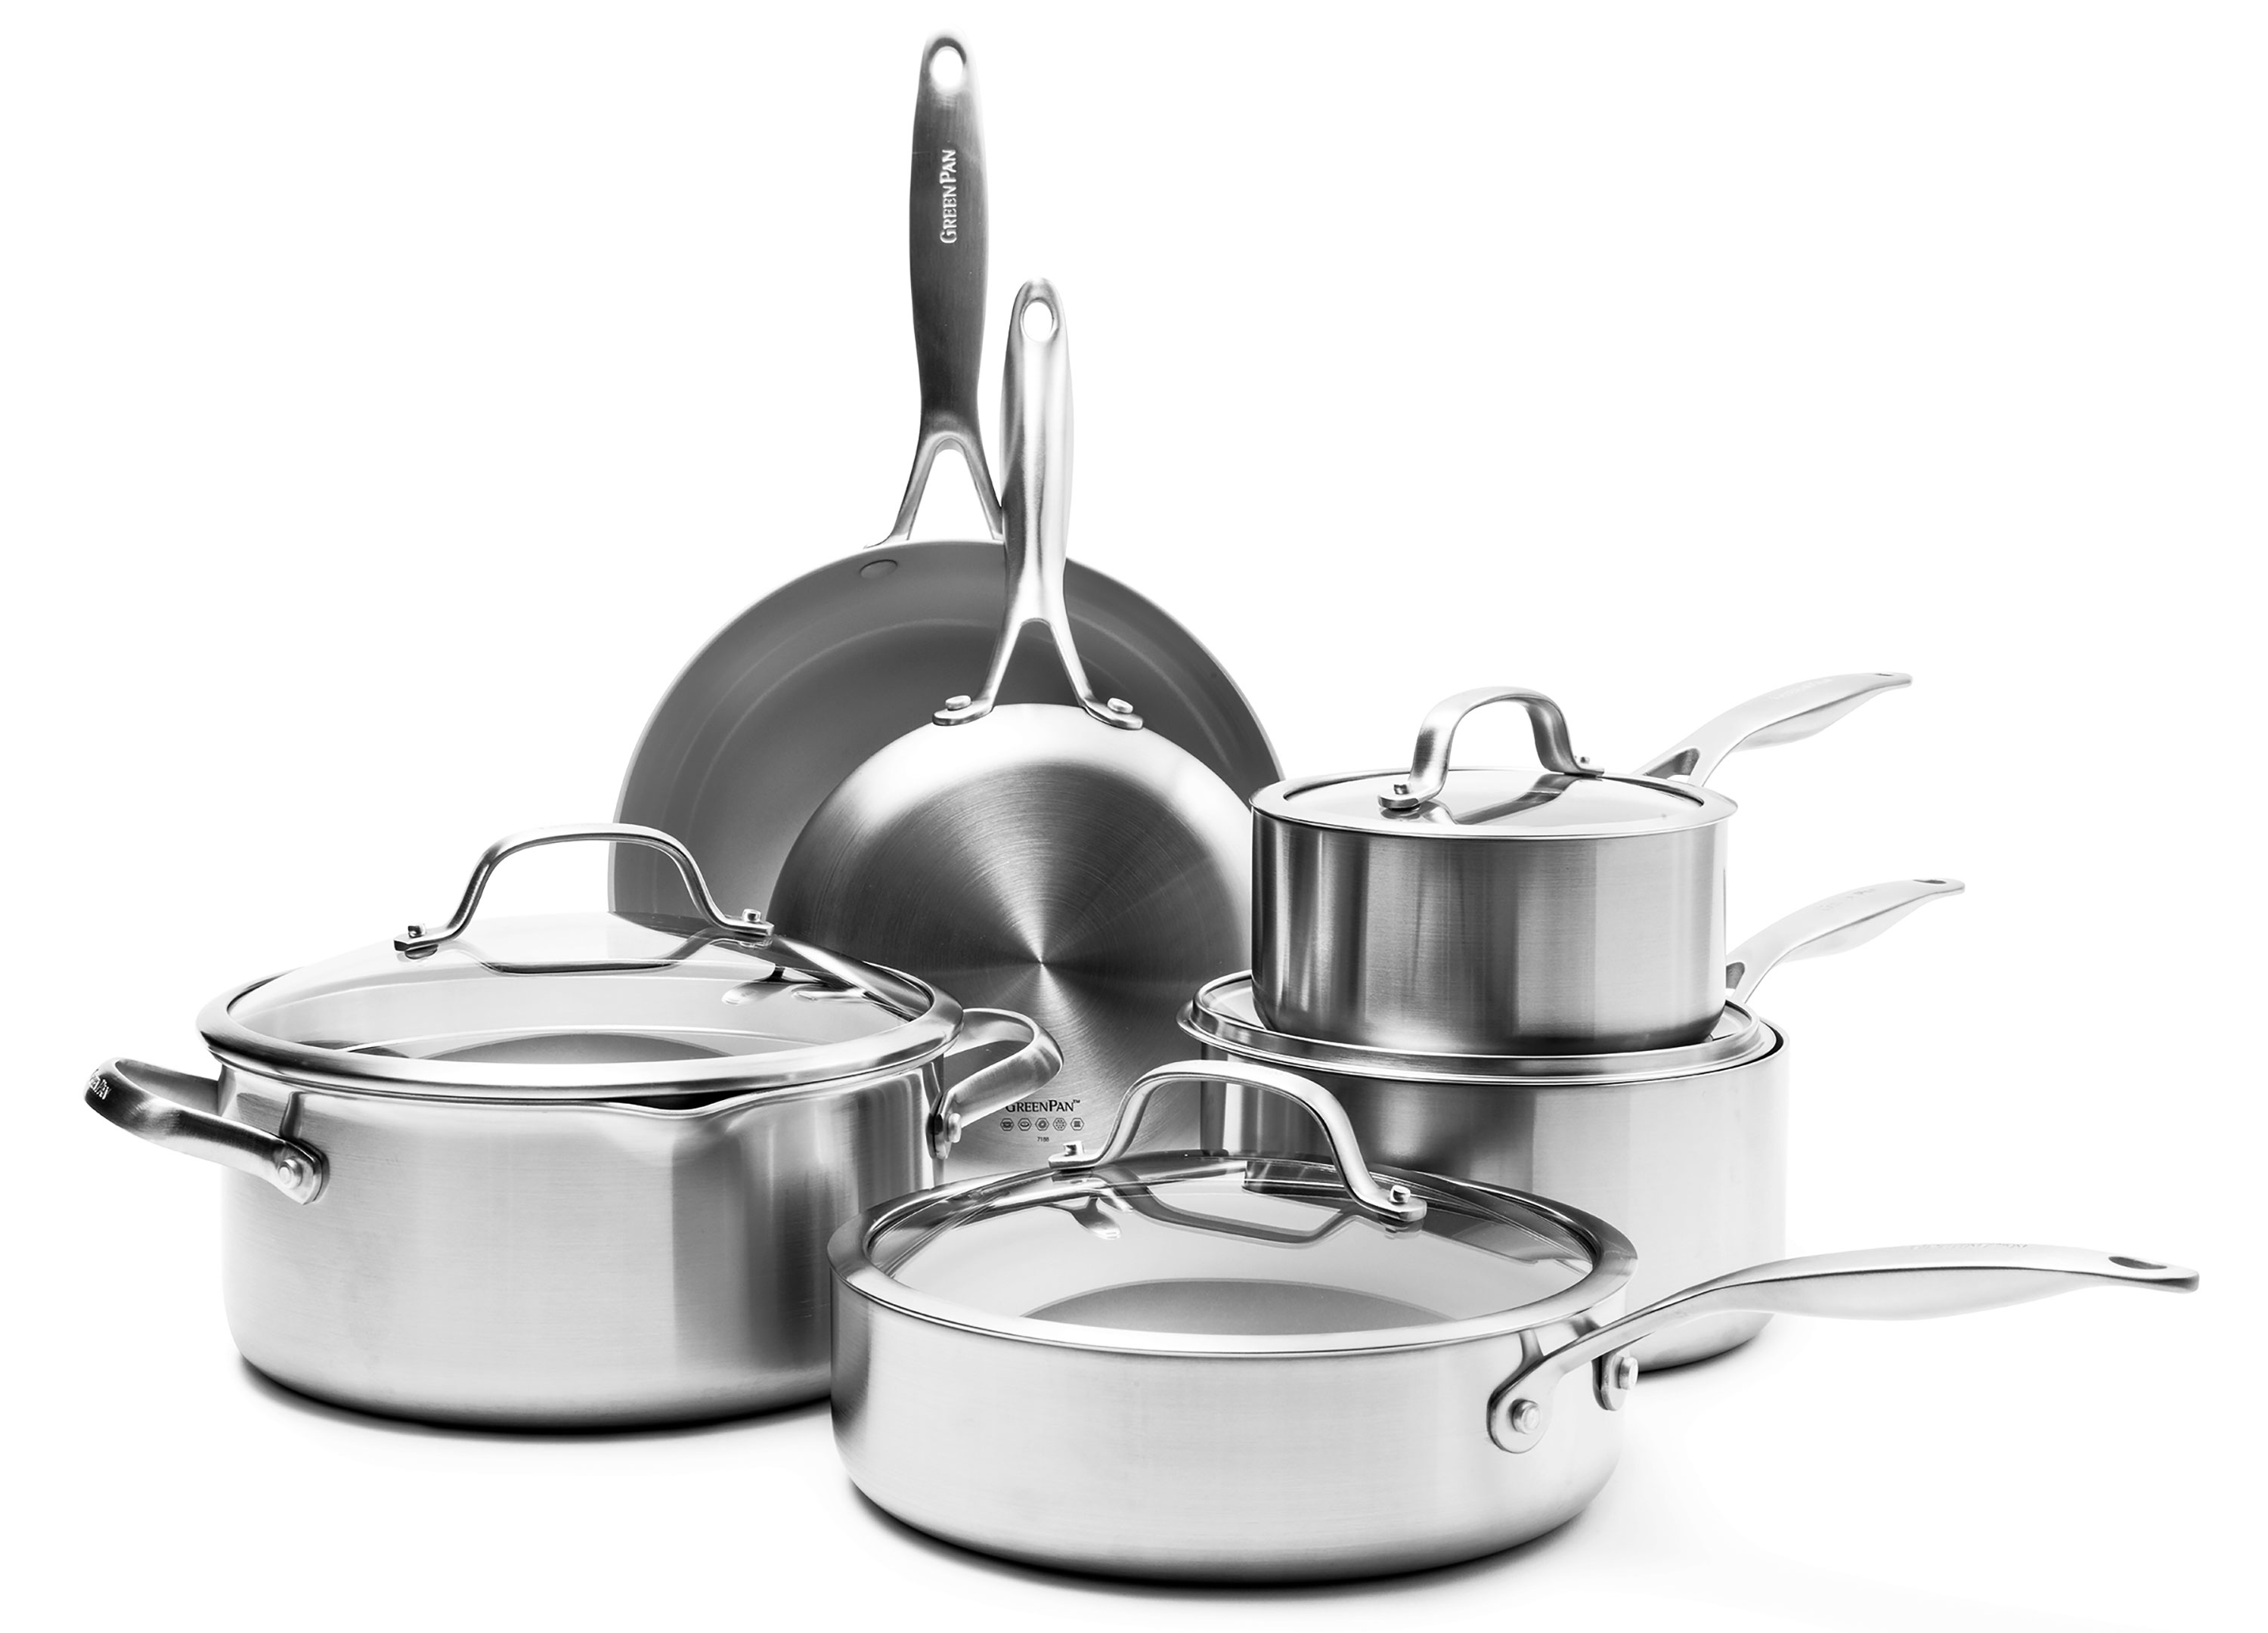 Greenpan Venice Pro Nonstick Cookware Set 10 Piece